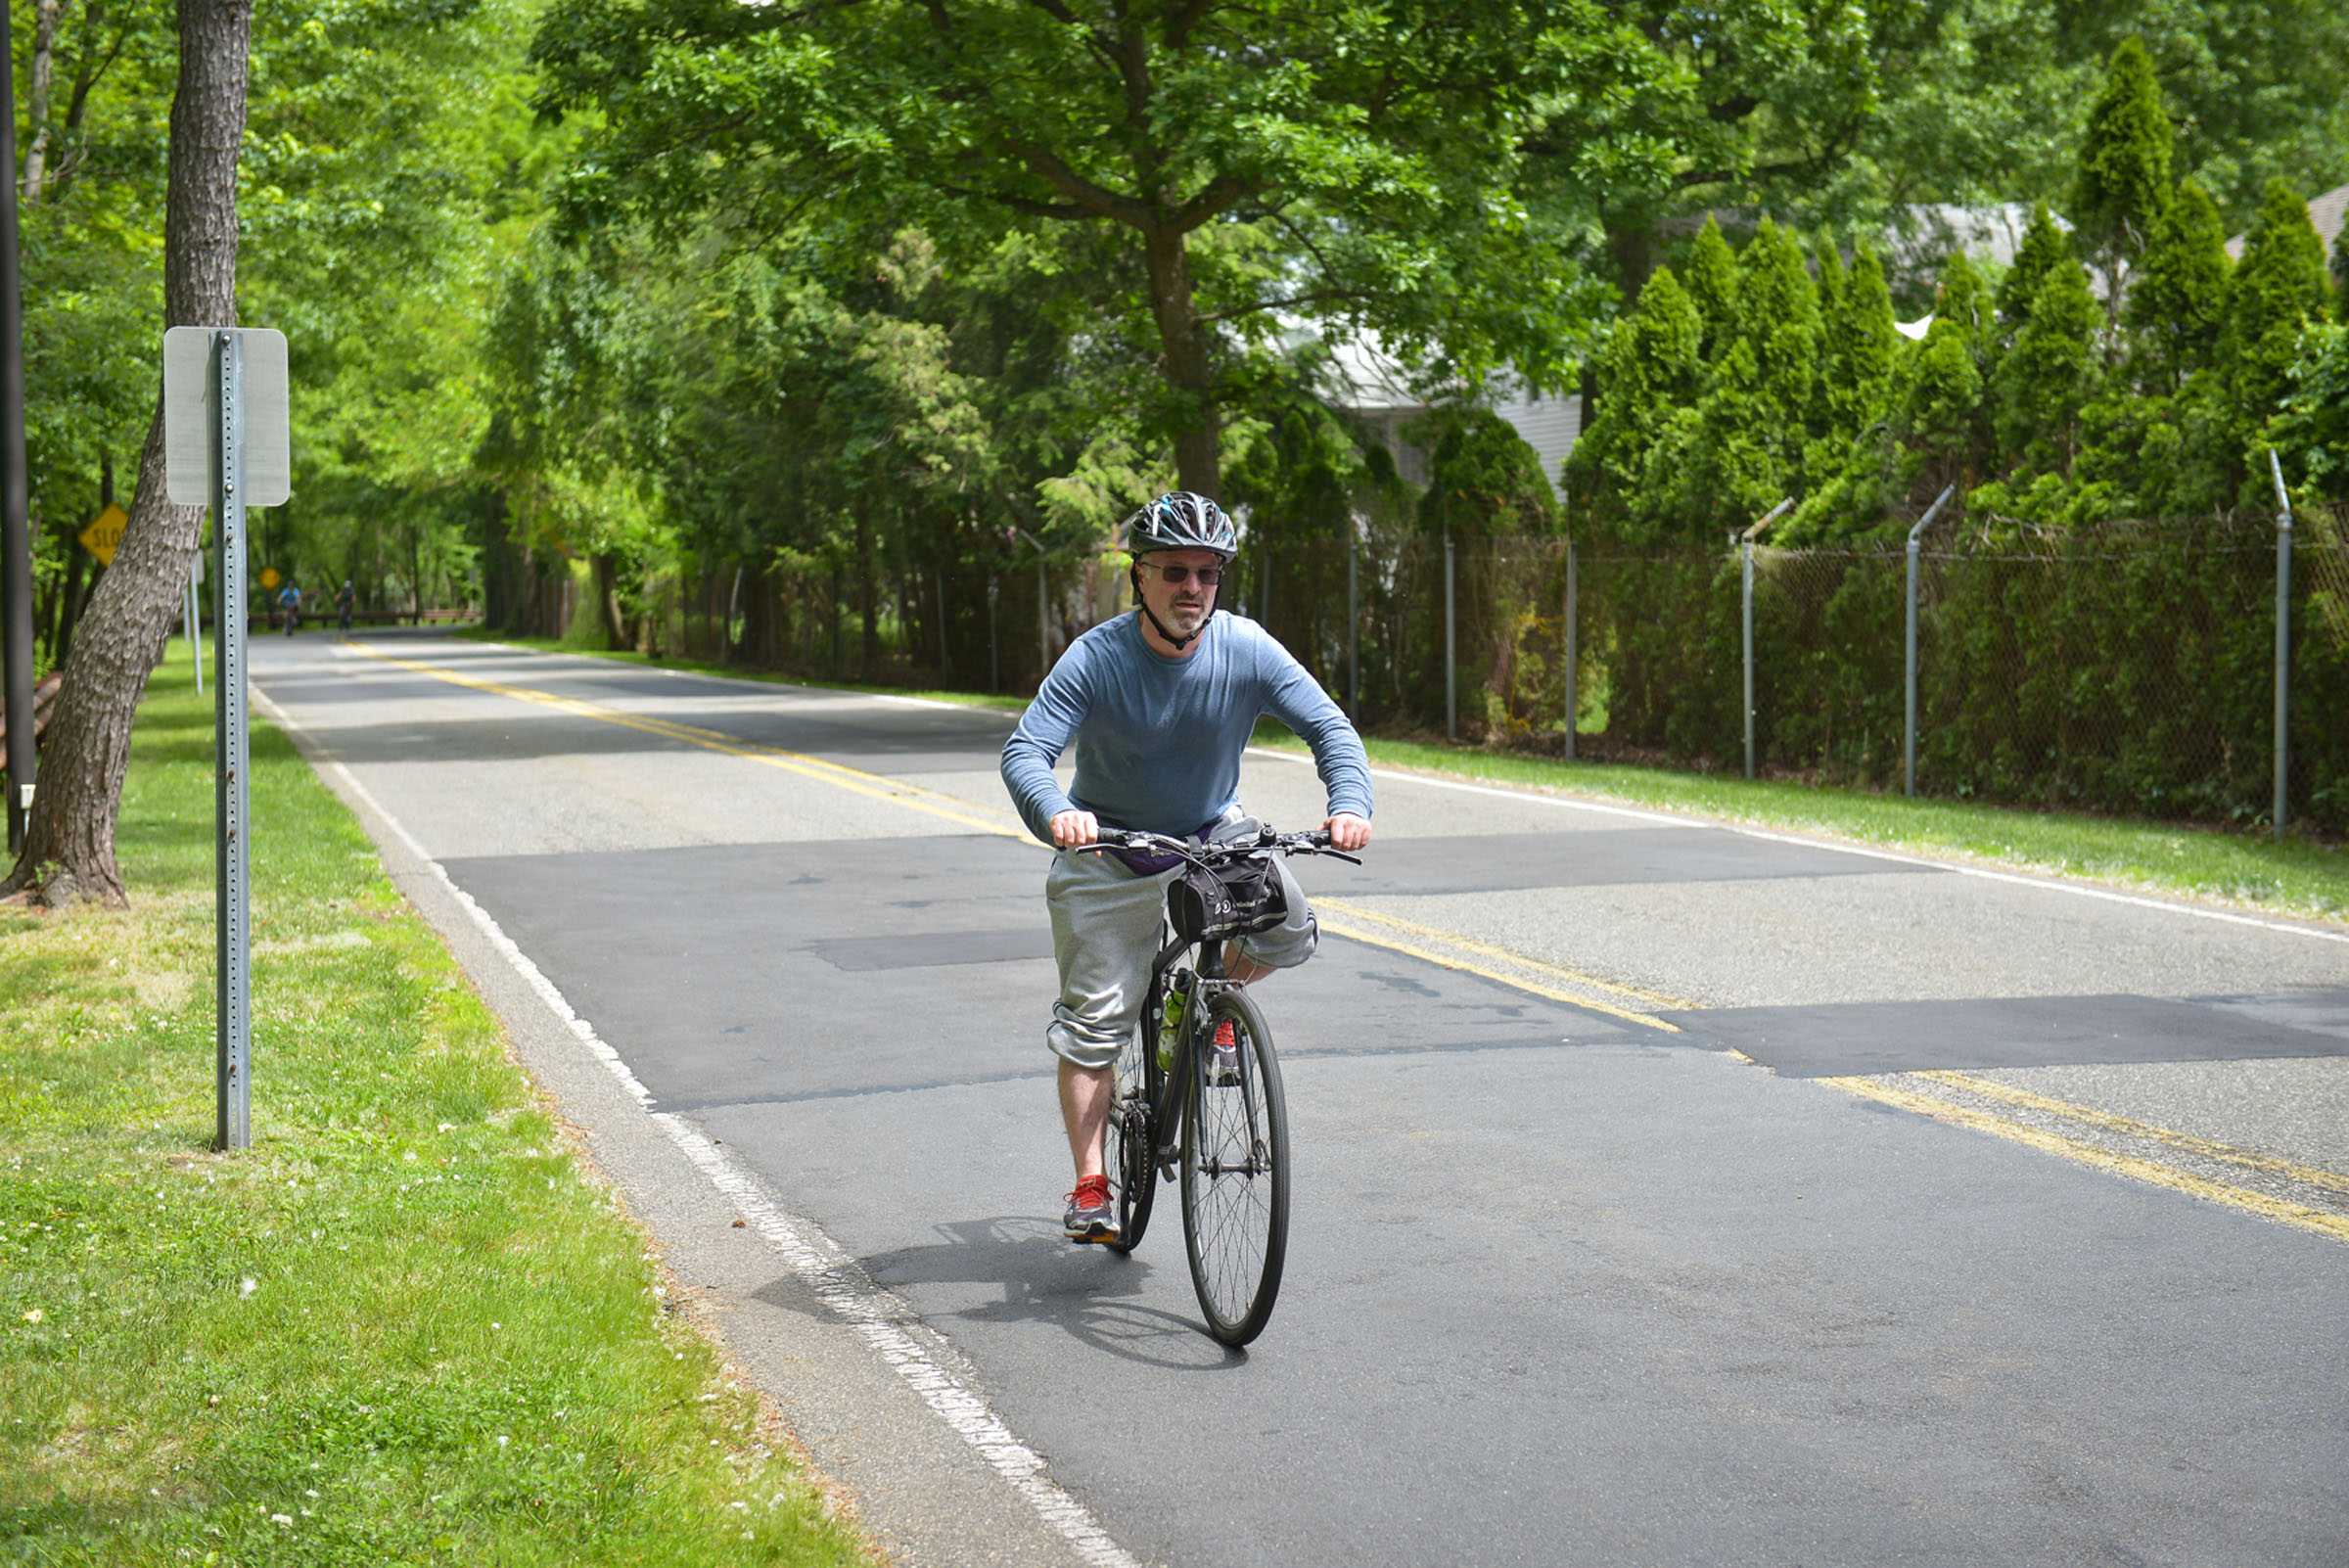 2017-06-04 GTD4A Charity Bike Ride - BCC - Paramus NJ-2377.jpg